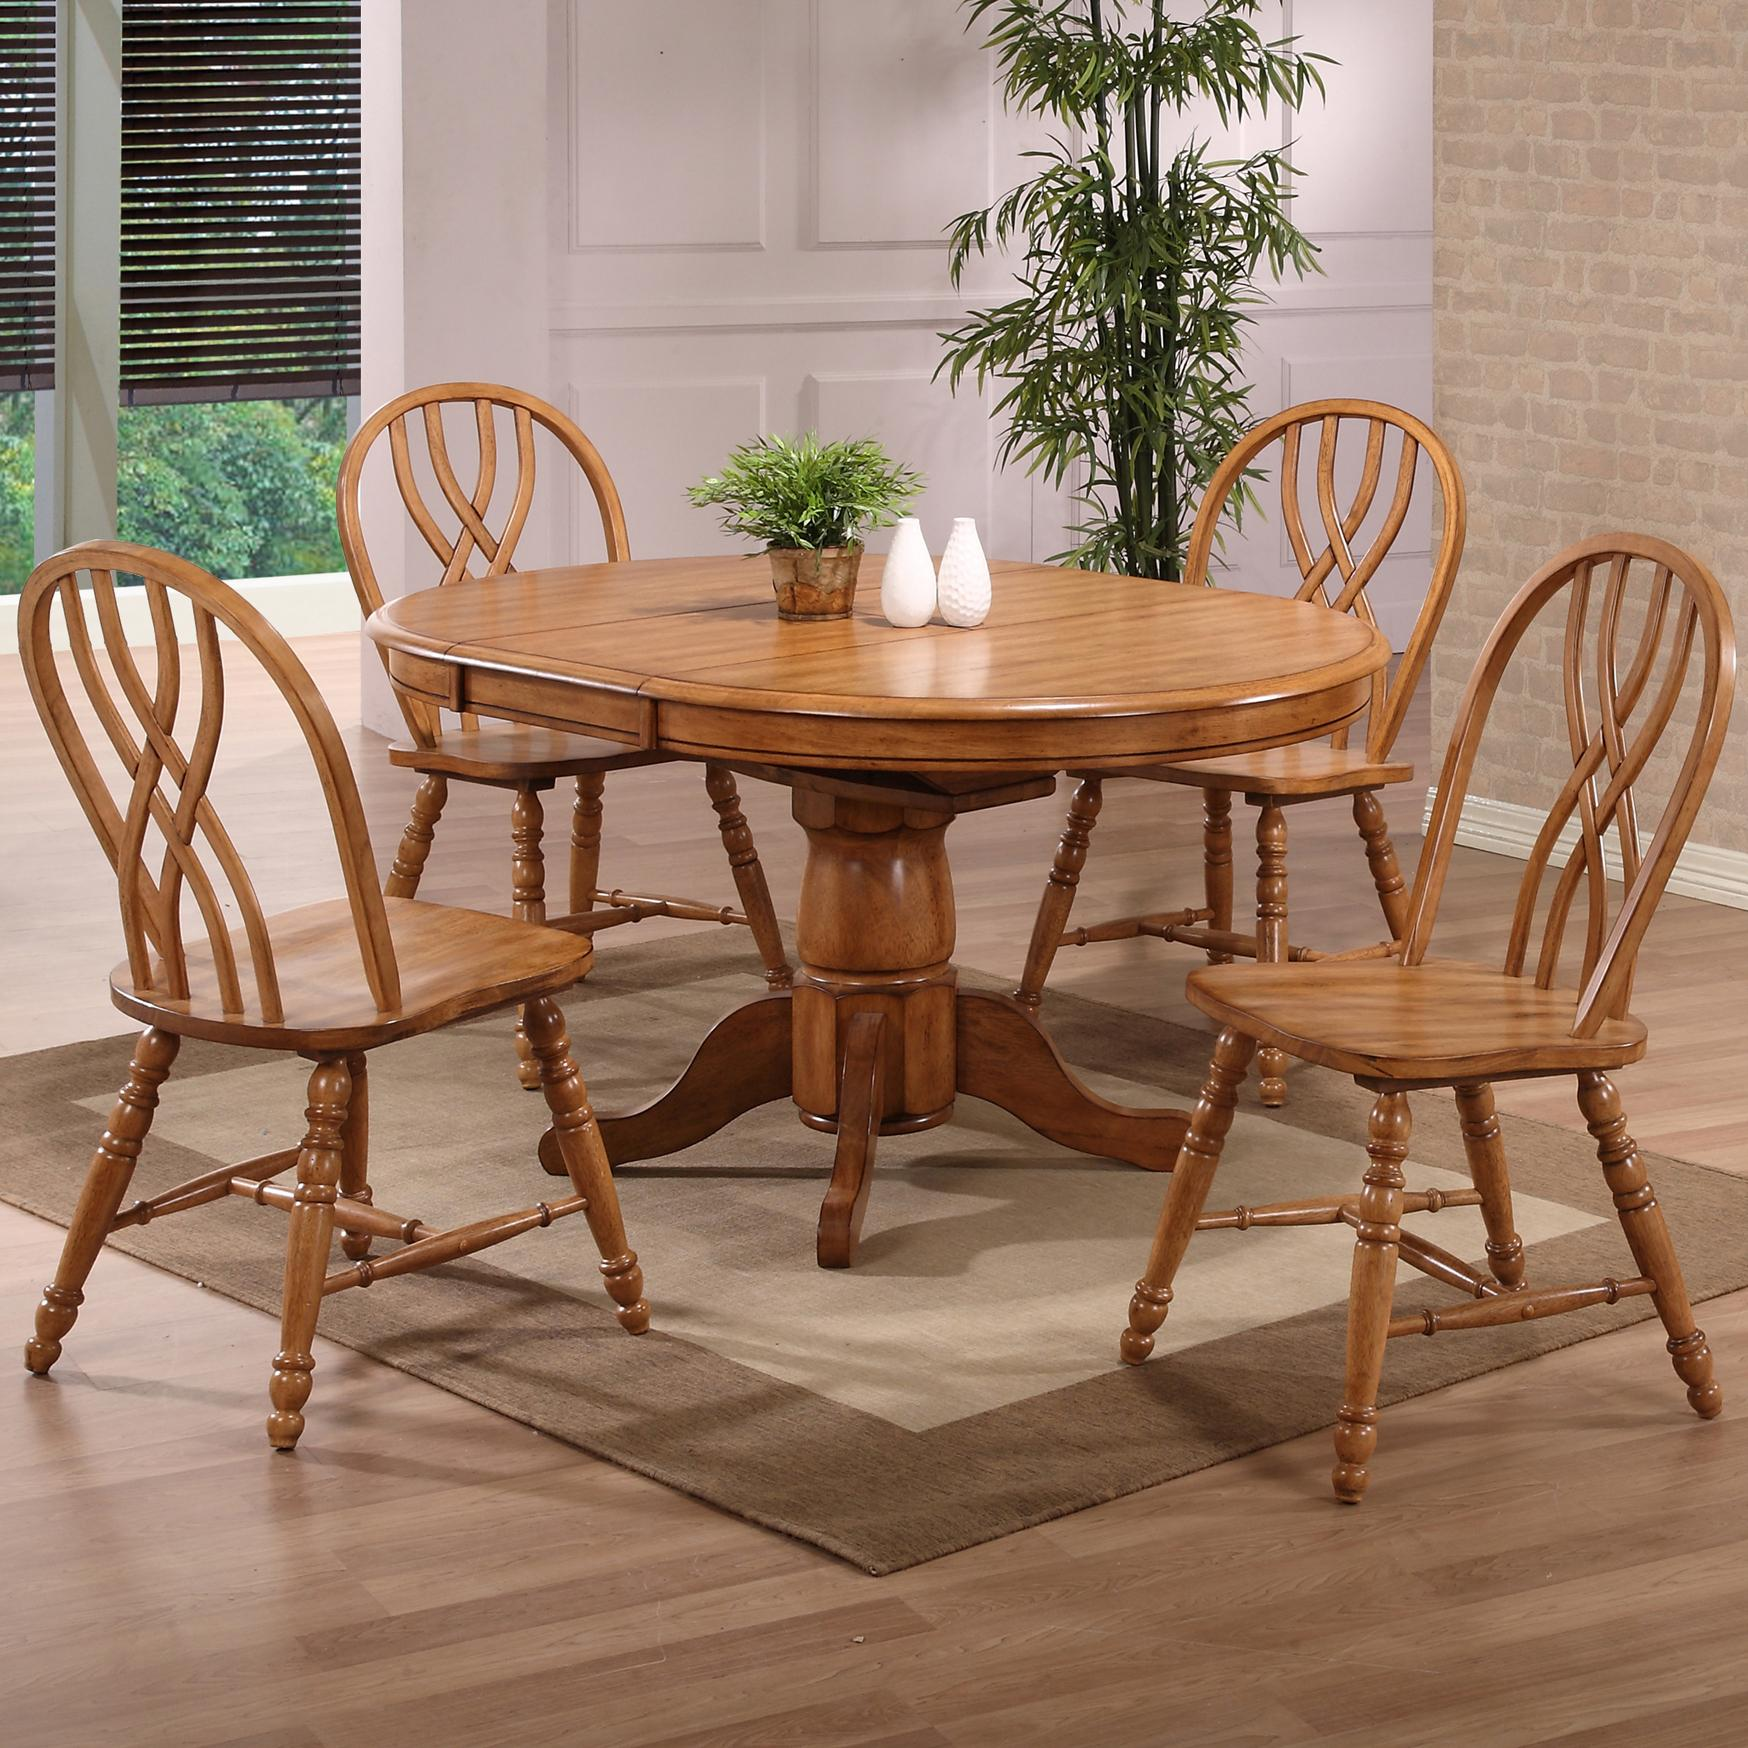 E c i furniture dining solid oak single pedestal dining for Single dining room chairs